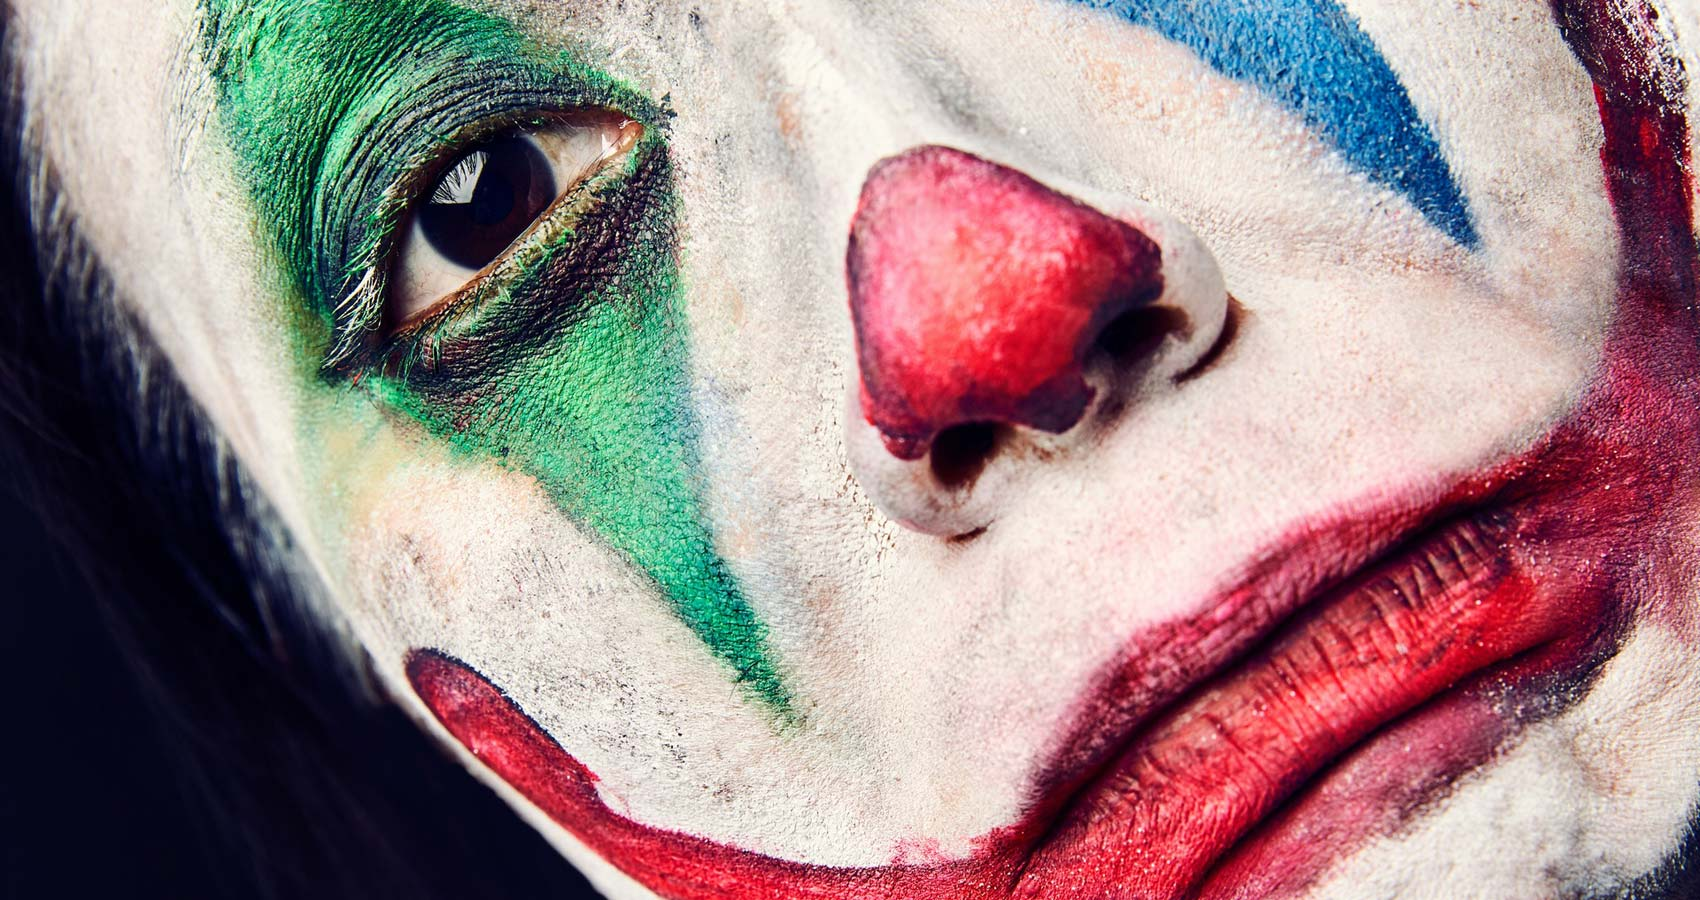 Send In The Clowns, a short story by Mark Kodama at Spillwords.com